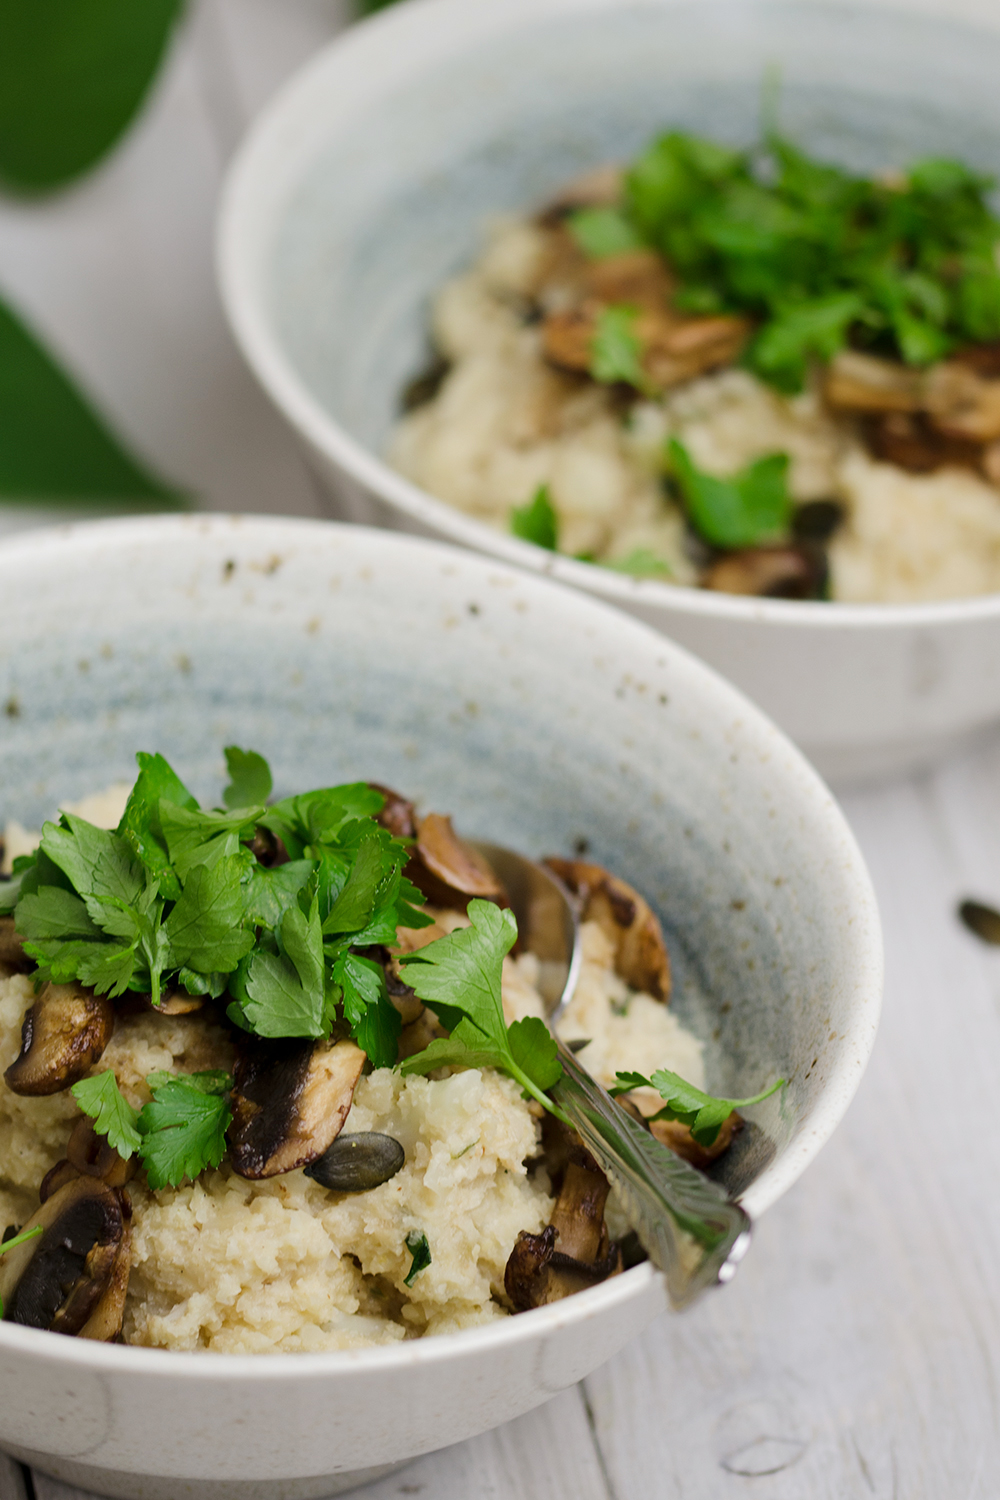 paleo low carb Cauliflower Risotto with Mushrooms - Blumenkohlrisotto mit Balsamico-Champignons